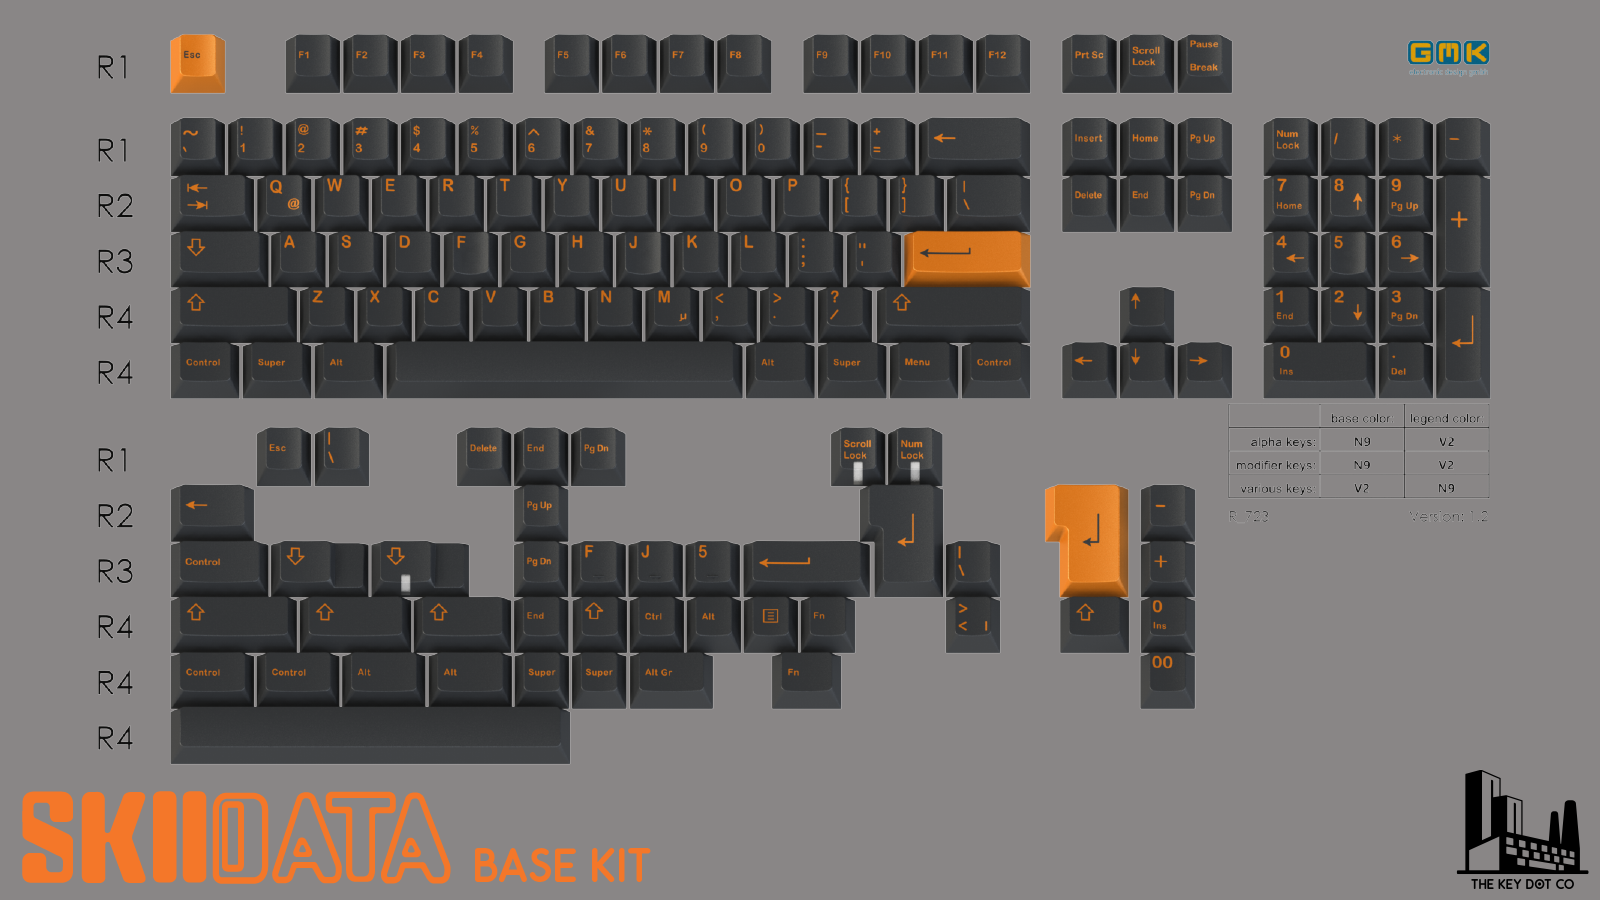 GMK SkIIdata Base